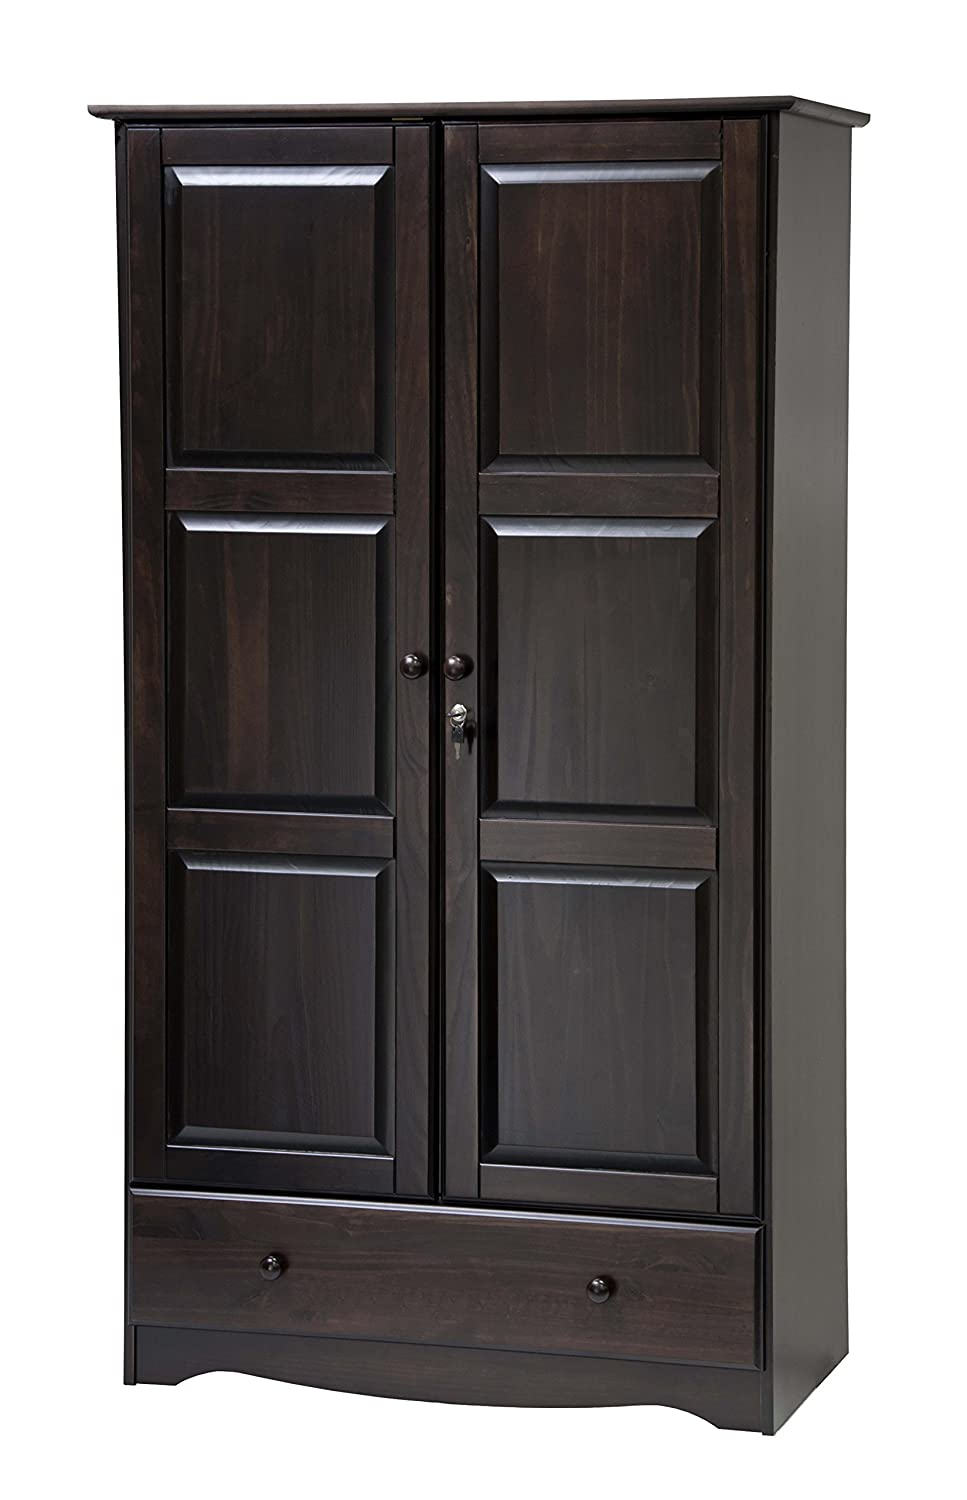 Your home improvements refference solid wood wardrobe closet - Amazon Com 100 Solid Wood Universal Wardrobe Armoire Closet By Palace Imports Java Color 40 W X 72 H X 21 D 2 Clothing Rods 2 Shelves 1 Lock